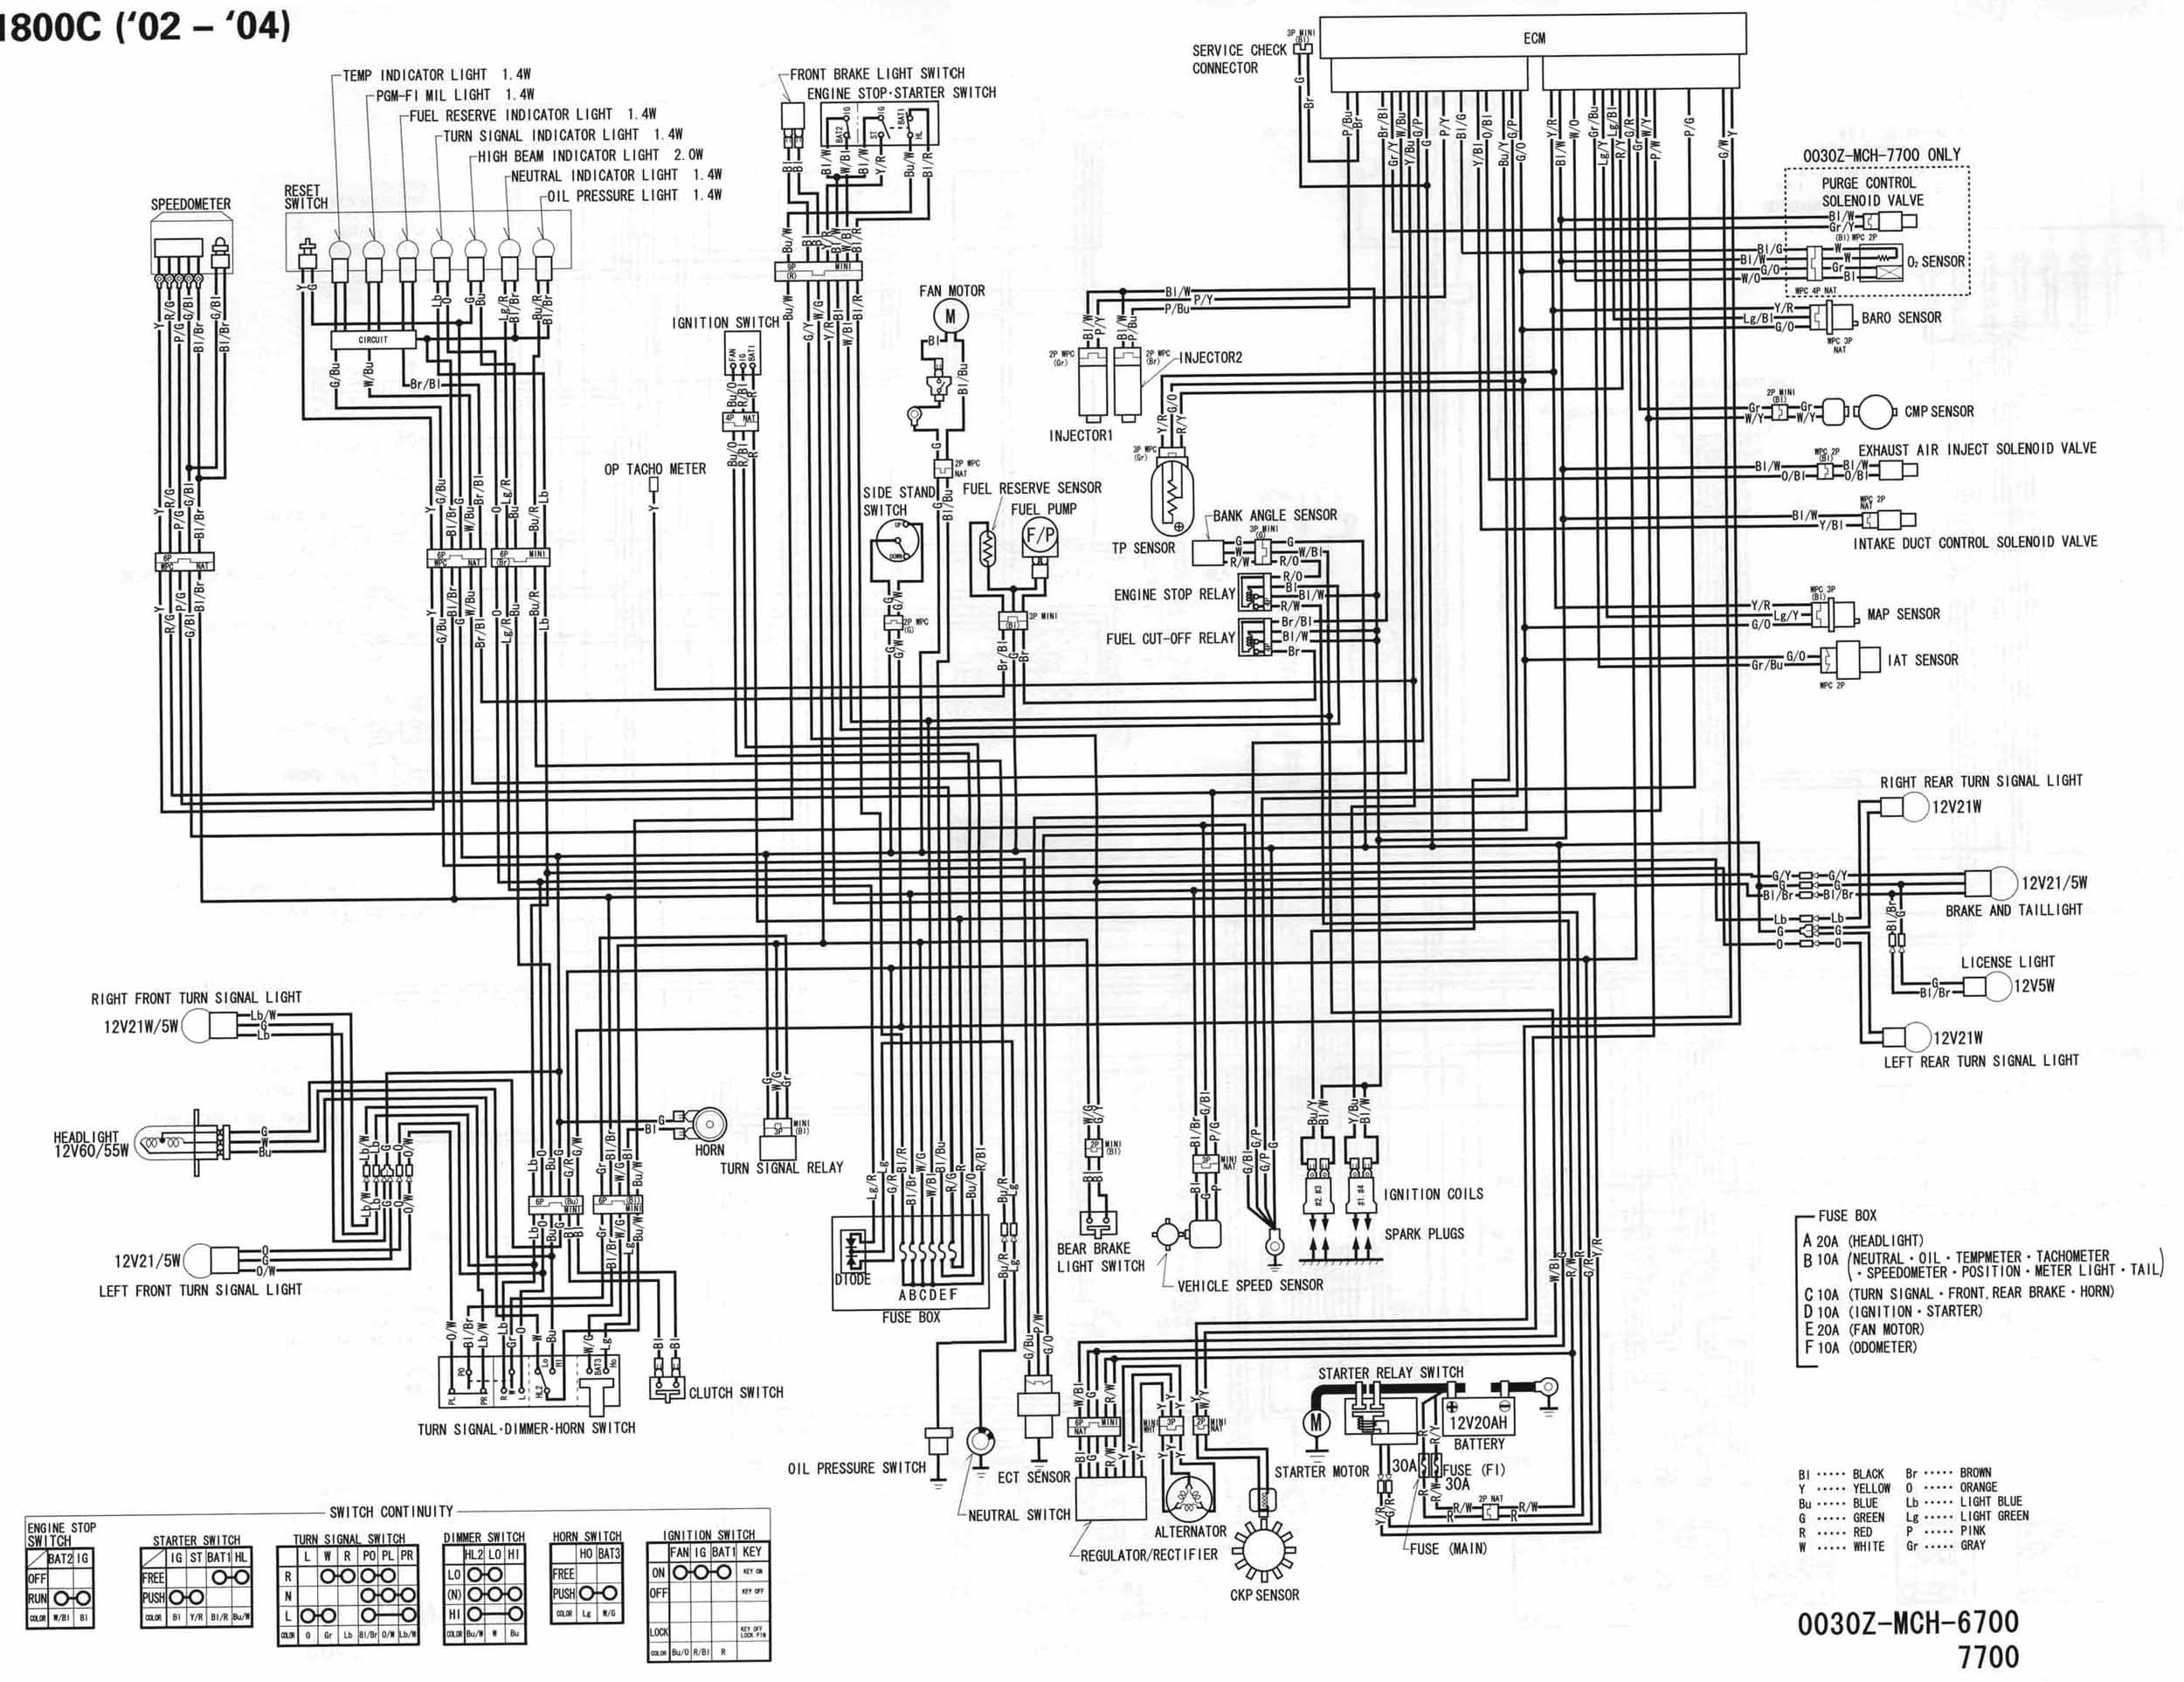 02 04_VTX1800_C_schematic motorcycle wire schematics bareass choppers motorcycle tech pages wiring diagram for victory motorcycles at fashall.co